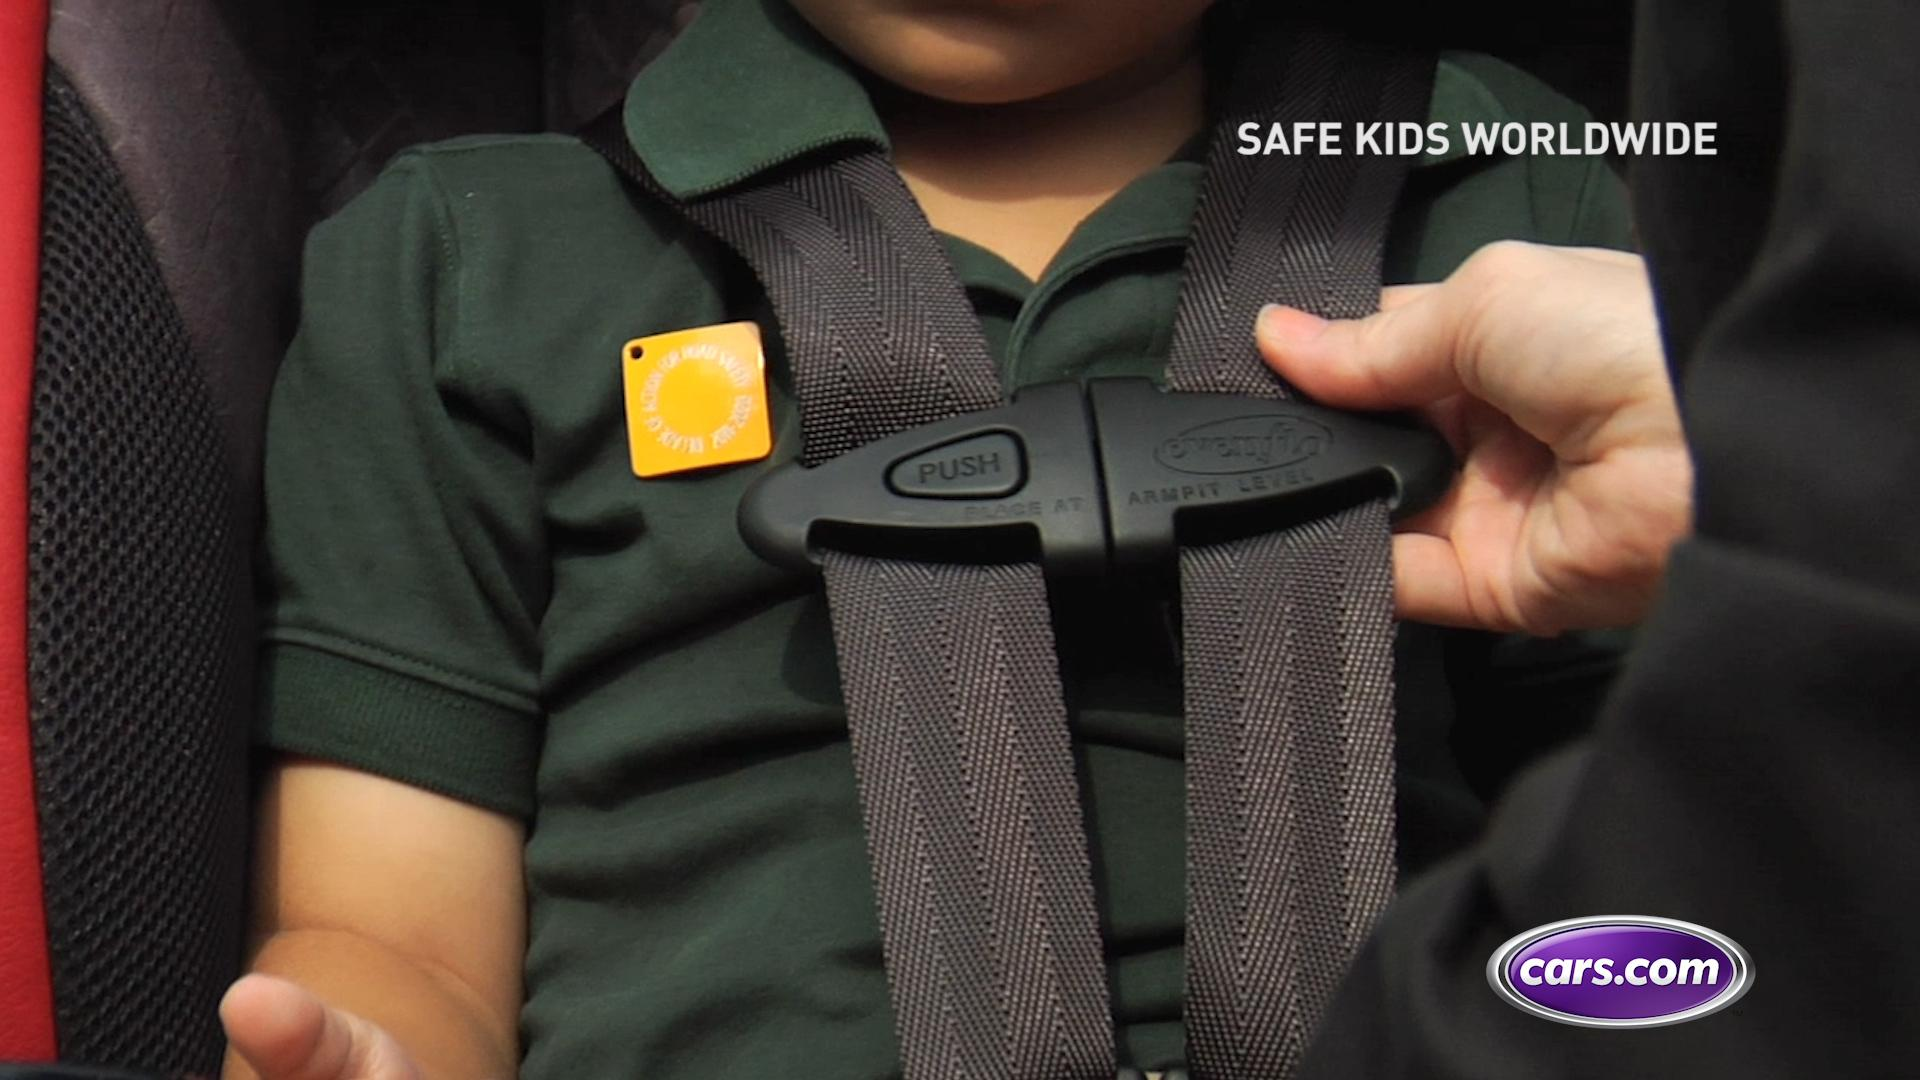 Video: Child Passenger Safety Tips for Your Precious Cargo